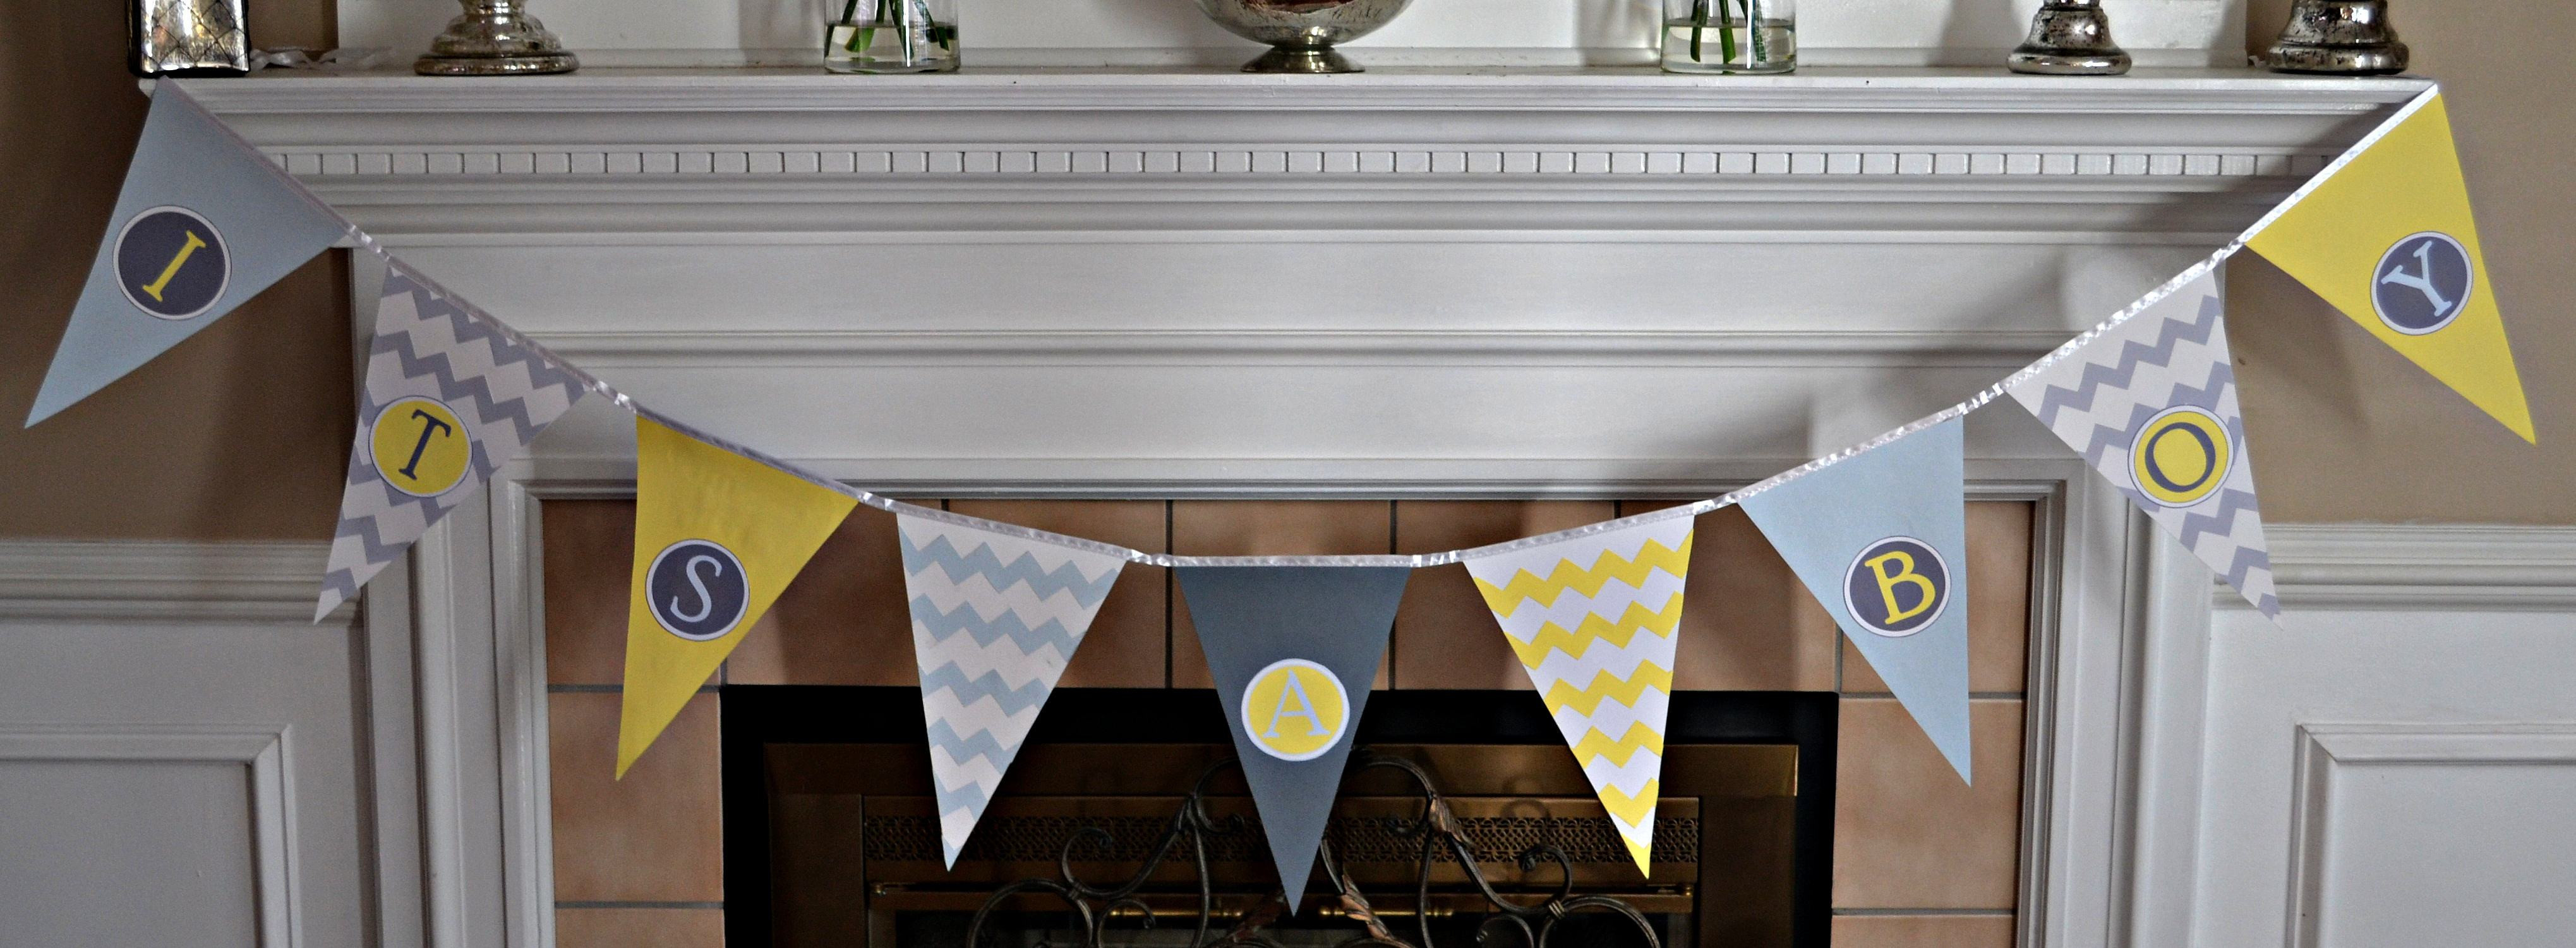 DIY Baby Shower Banners  Baby Shower Pennant Banner Tutorial